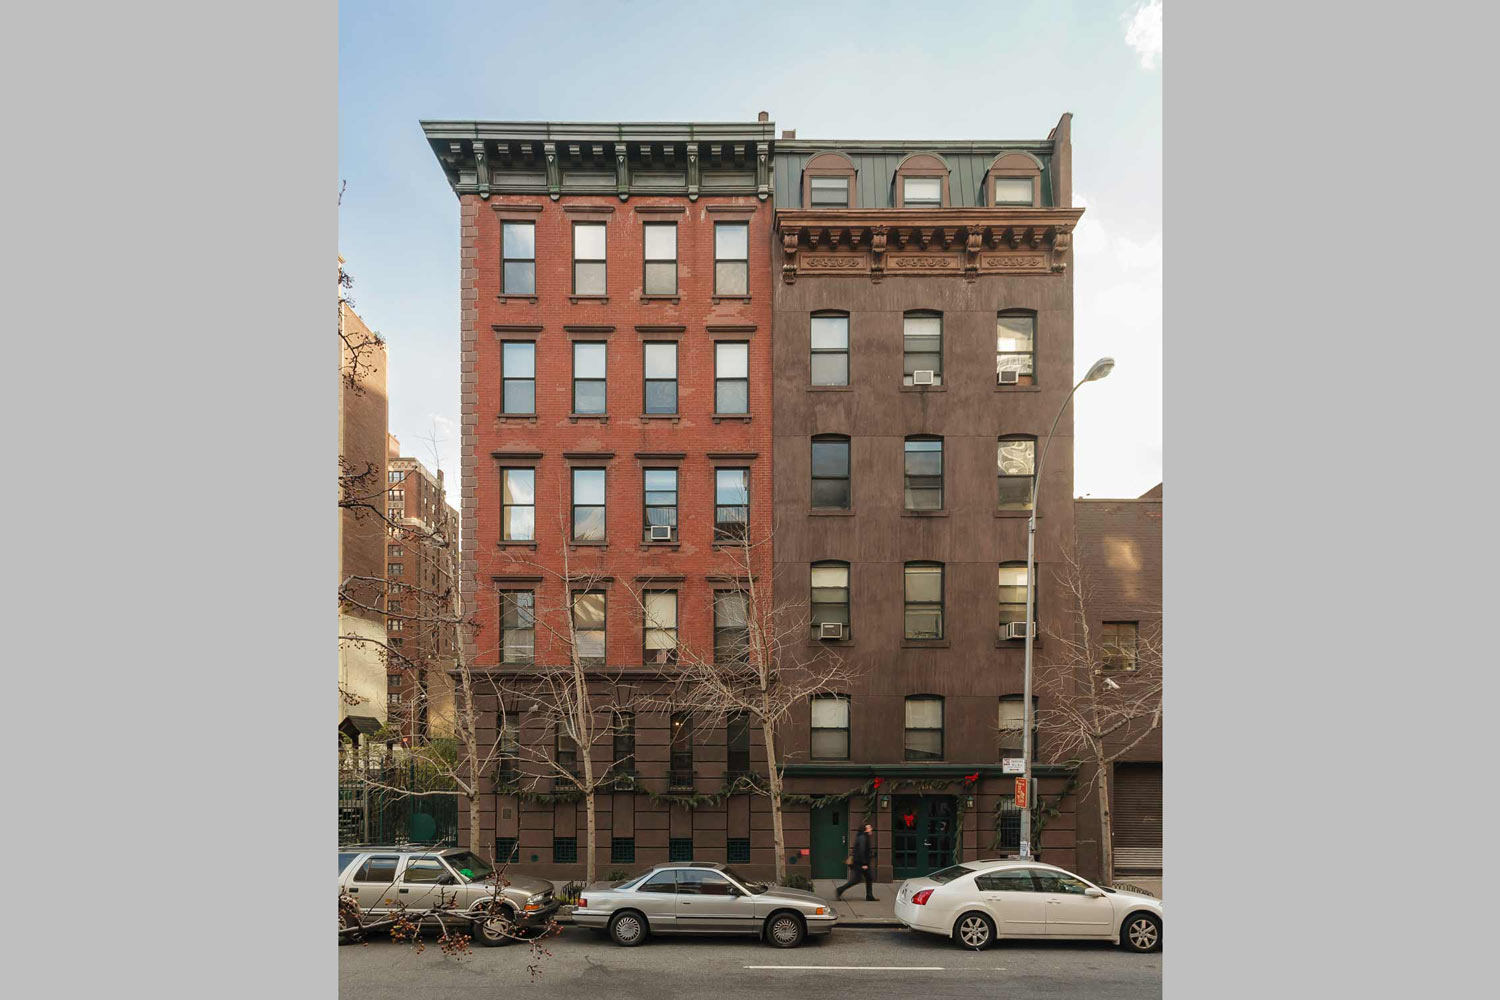 Nero Wolfe is a supportive housing rehabilitation and expansion project on West 35th Street by OCV Architects.